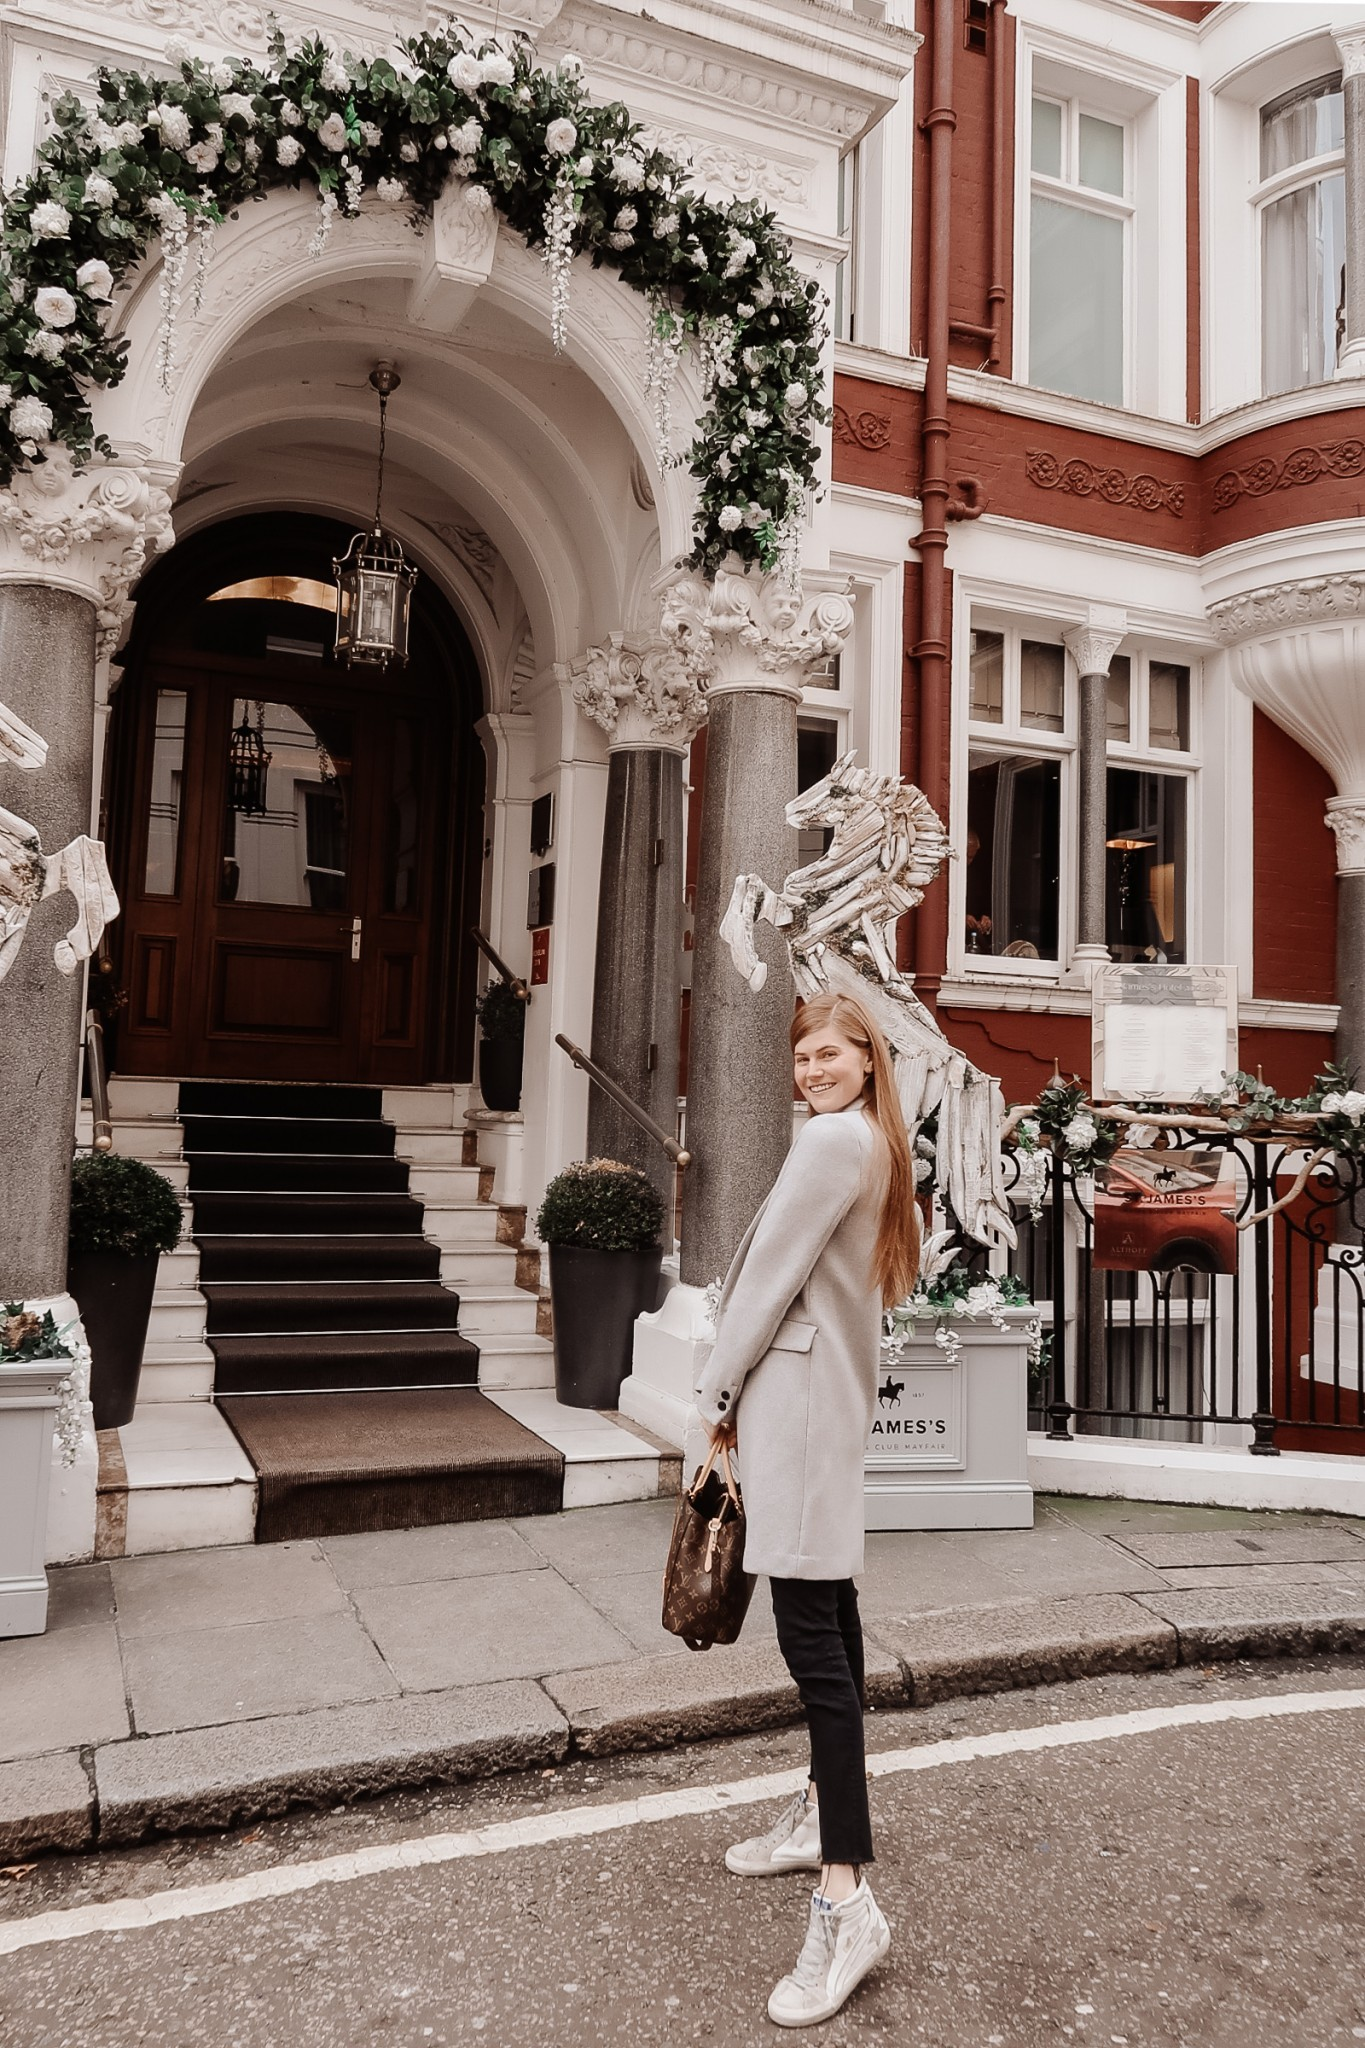 Lifestyle blogger Mollie Moore shares where to stay in London